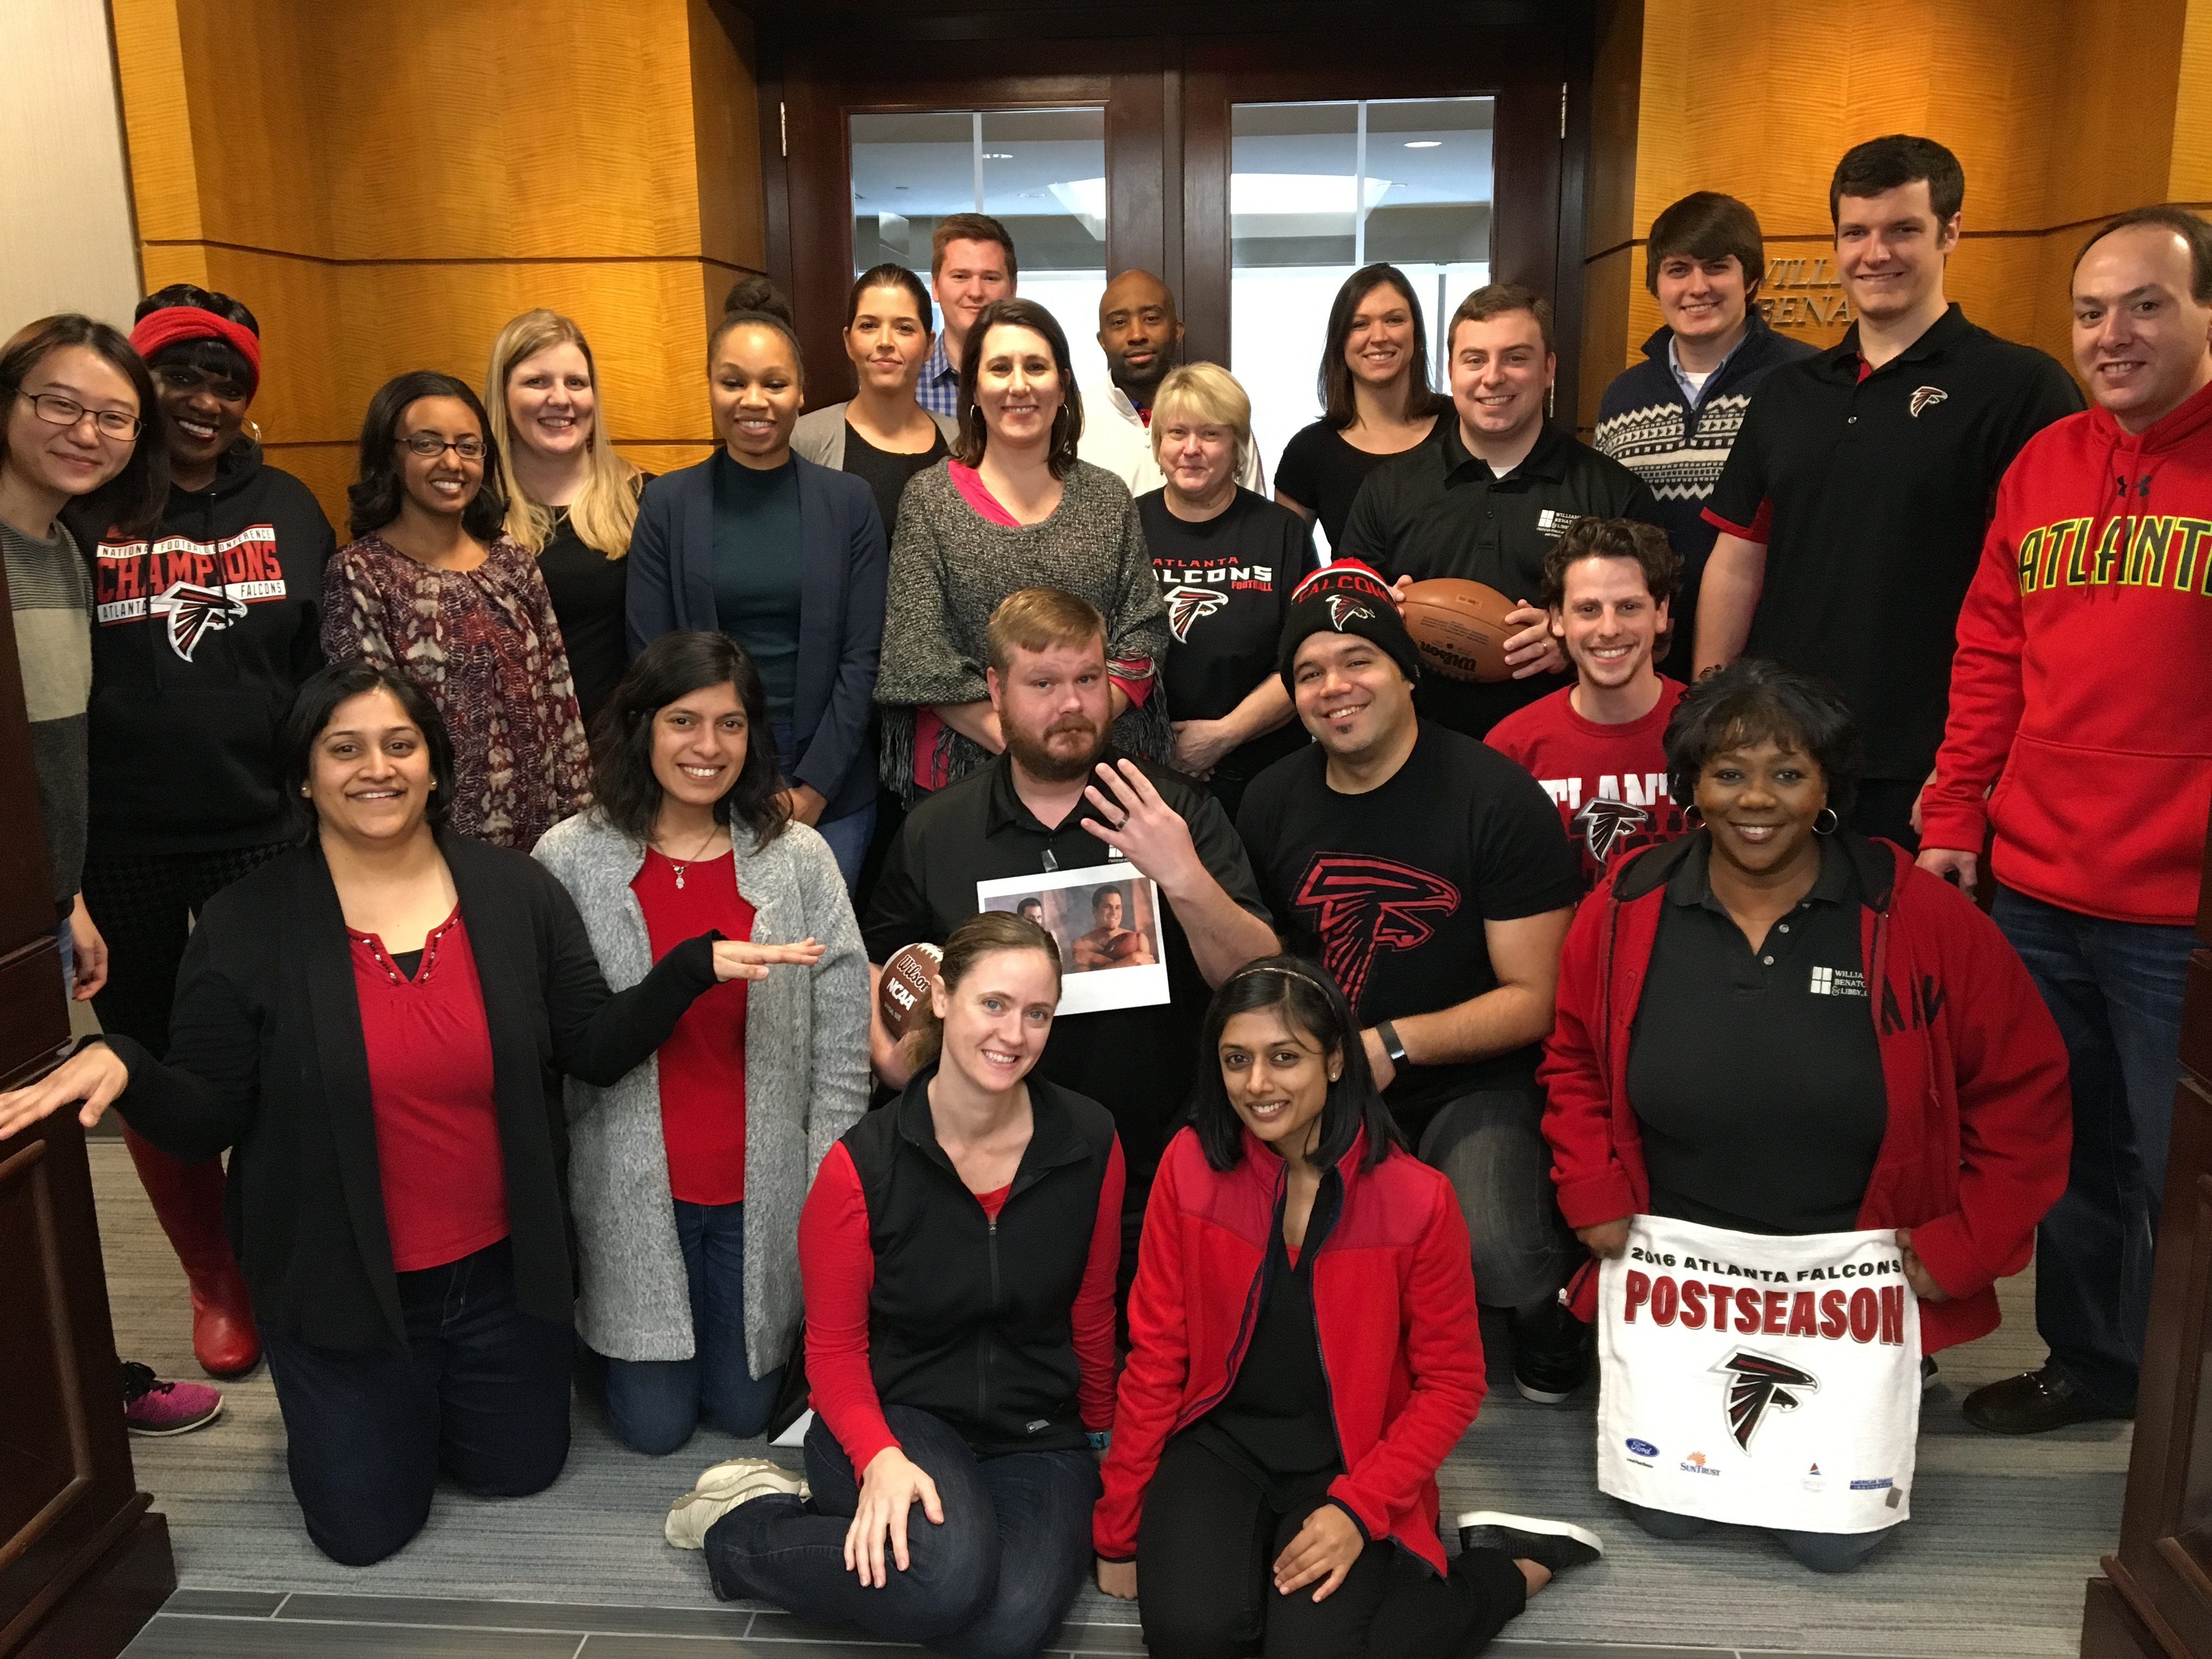 Staff showed their Falcons spirit before the Super Bowl in 2017.